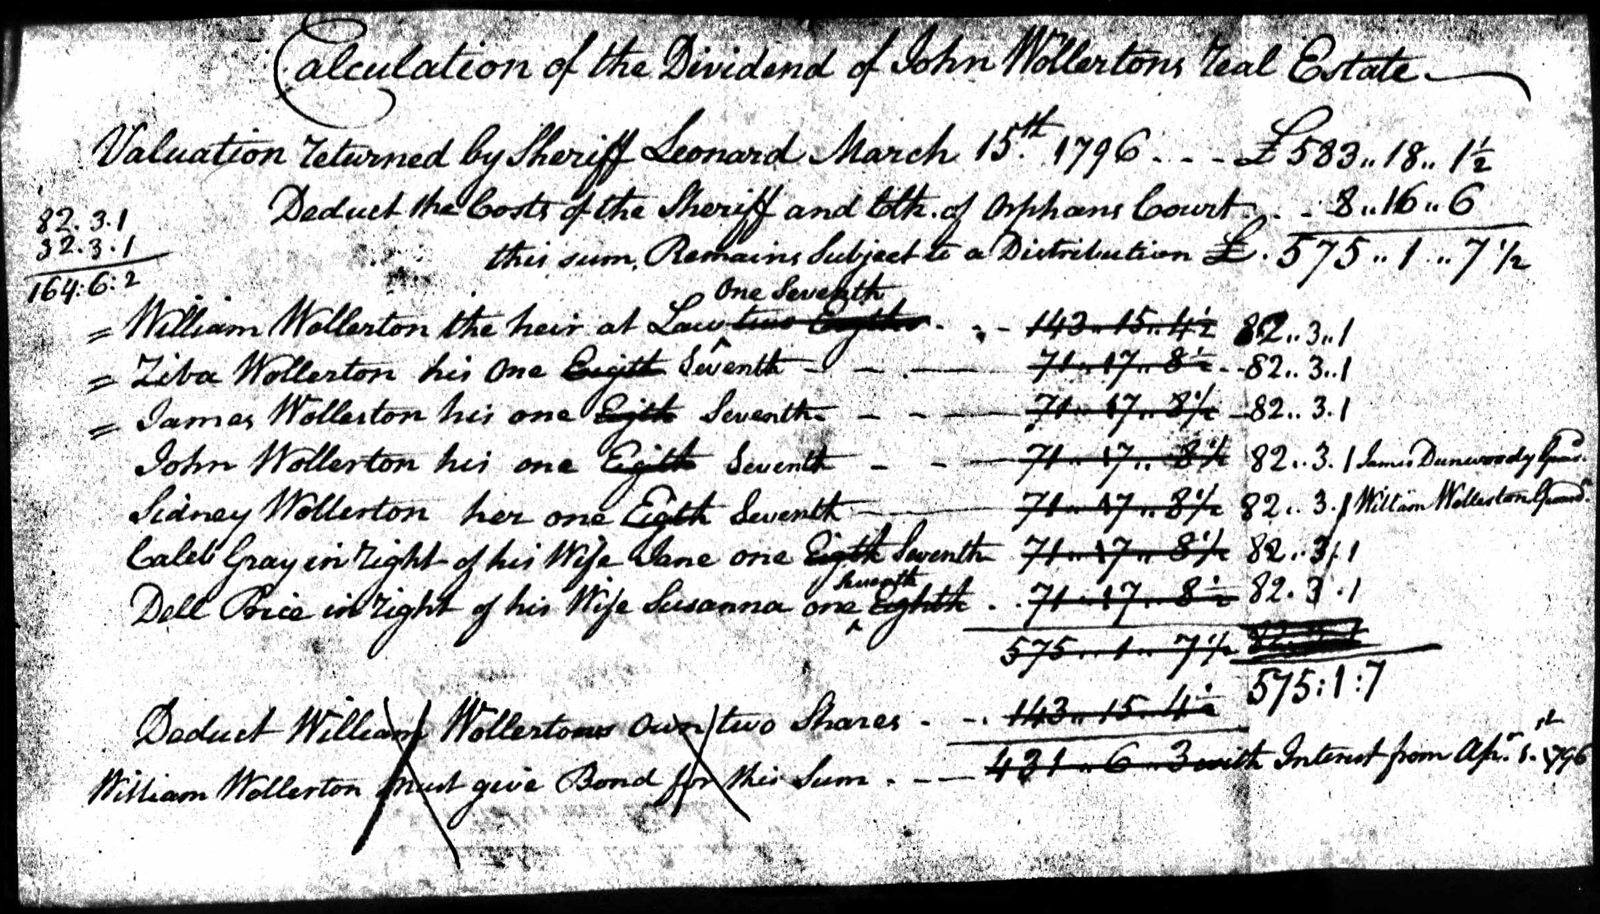 The Division or Valuation Notice of the Estate of John Wollerton